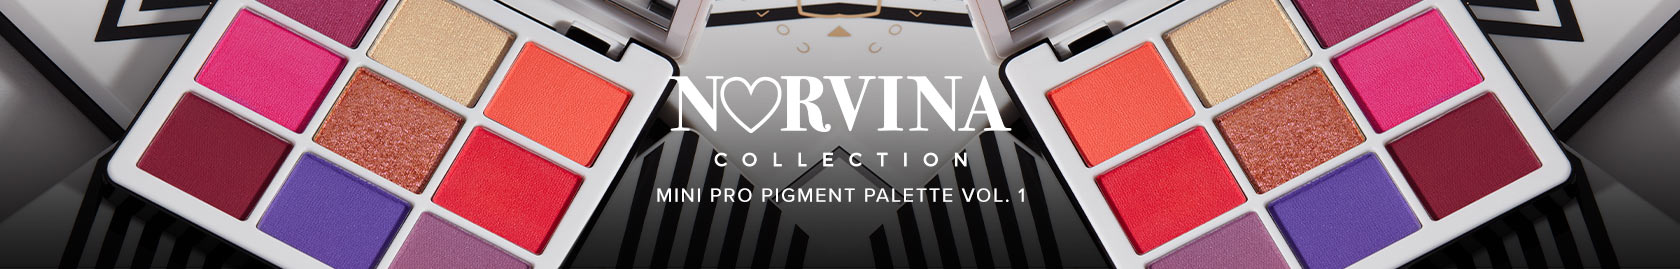 Norvina Collection Mini Pro Pigment Palette Vol. 1